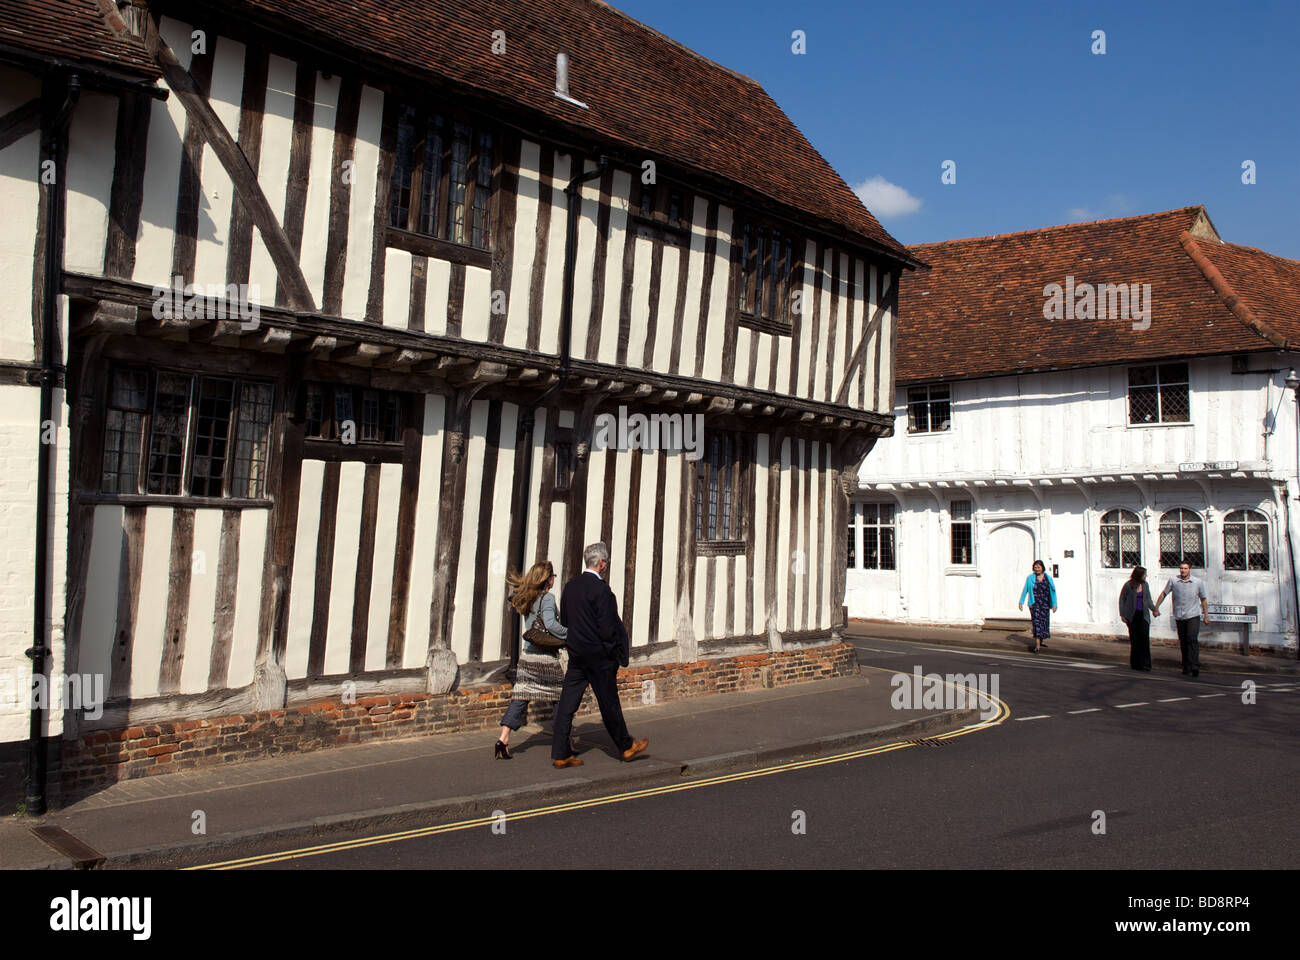 Half-timbered medieval houses, Lavenham, Suffolk, UK. - Stock Image